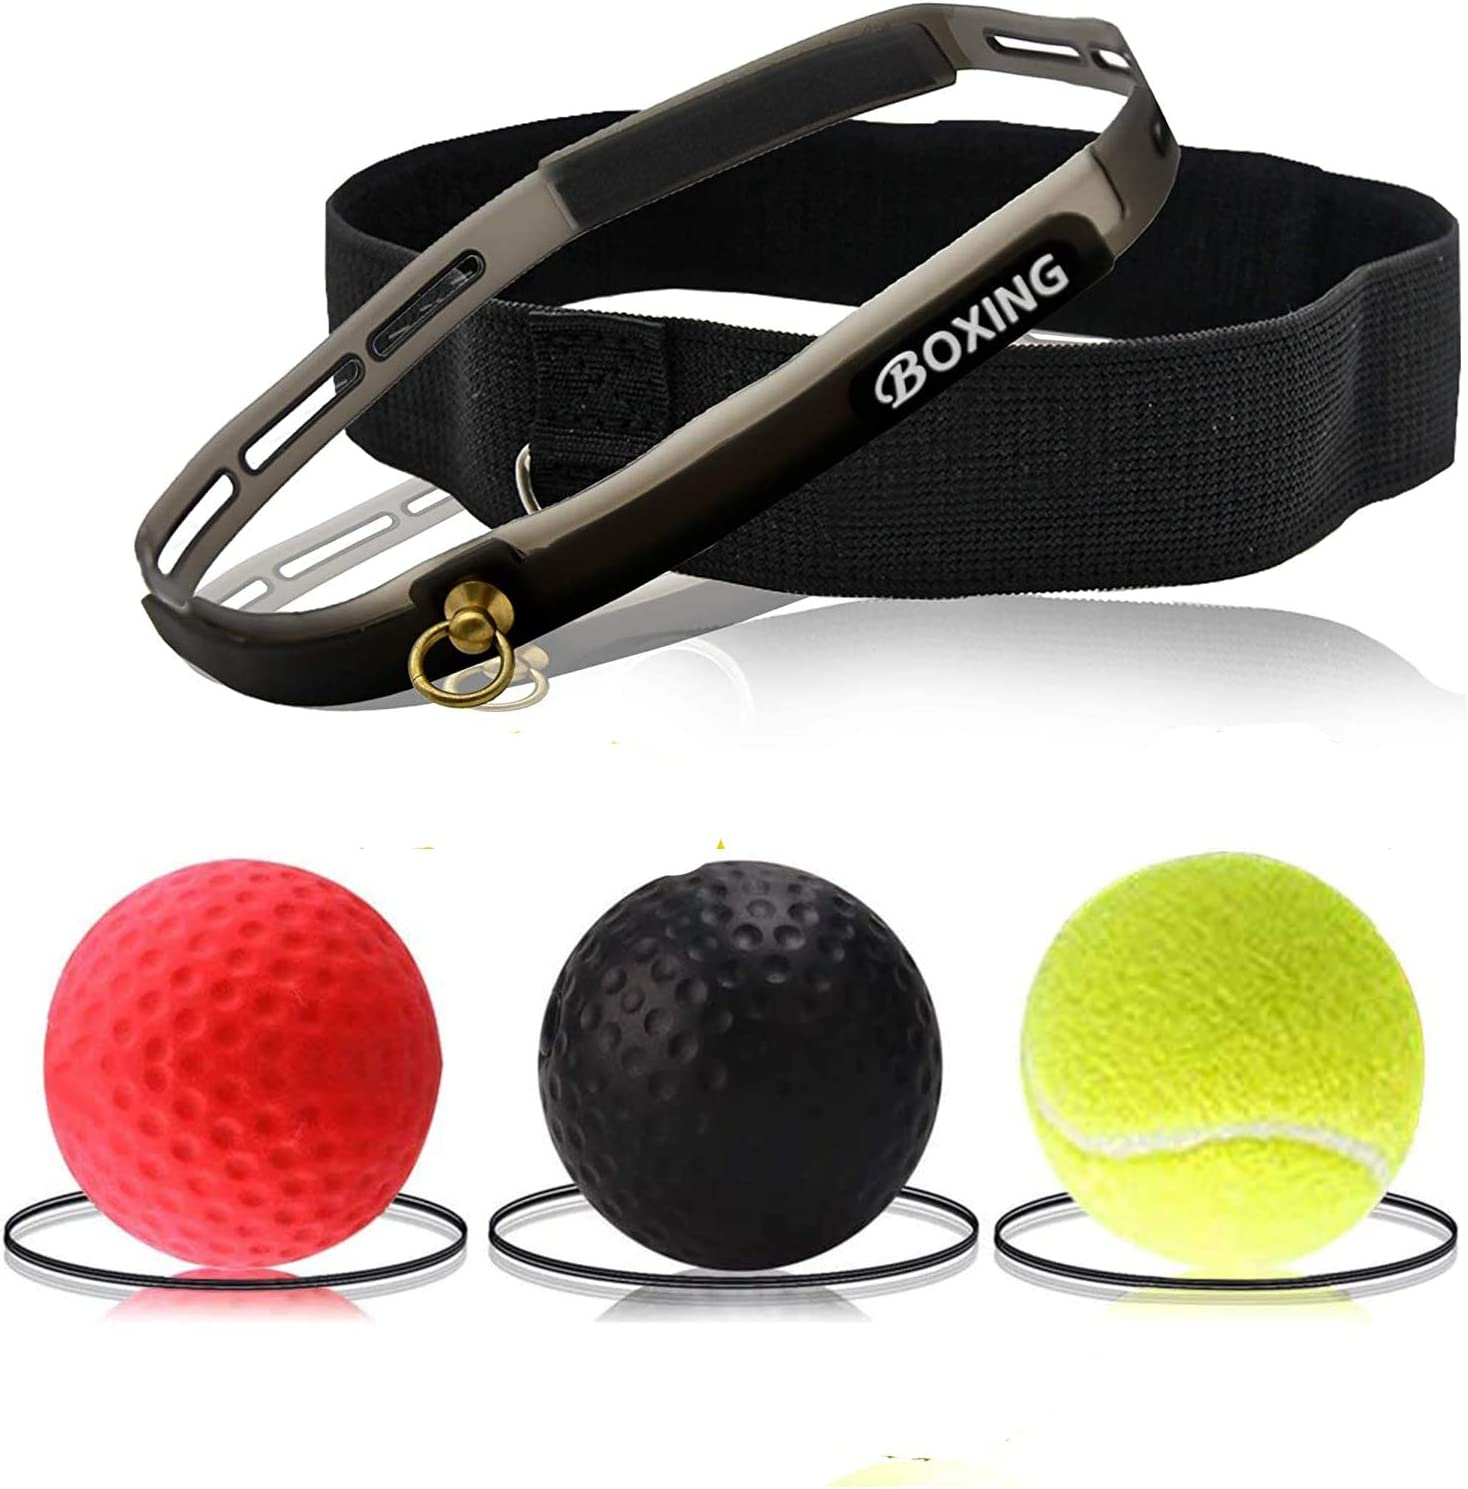 Govary Boxing Reflex Ball - 3 Difficulty Level Boxing Ball with Headband, Fight Ball Reflex for Improve Speed Reactions and Hand Eye Coordination, Home Sports for Boxing,Combat Sports Training,Fitness